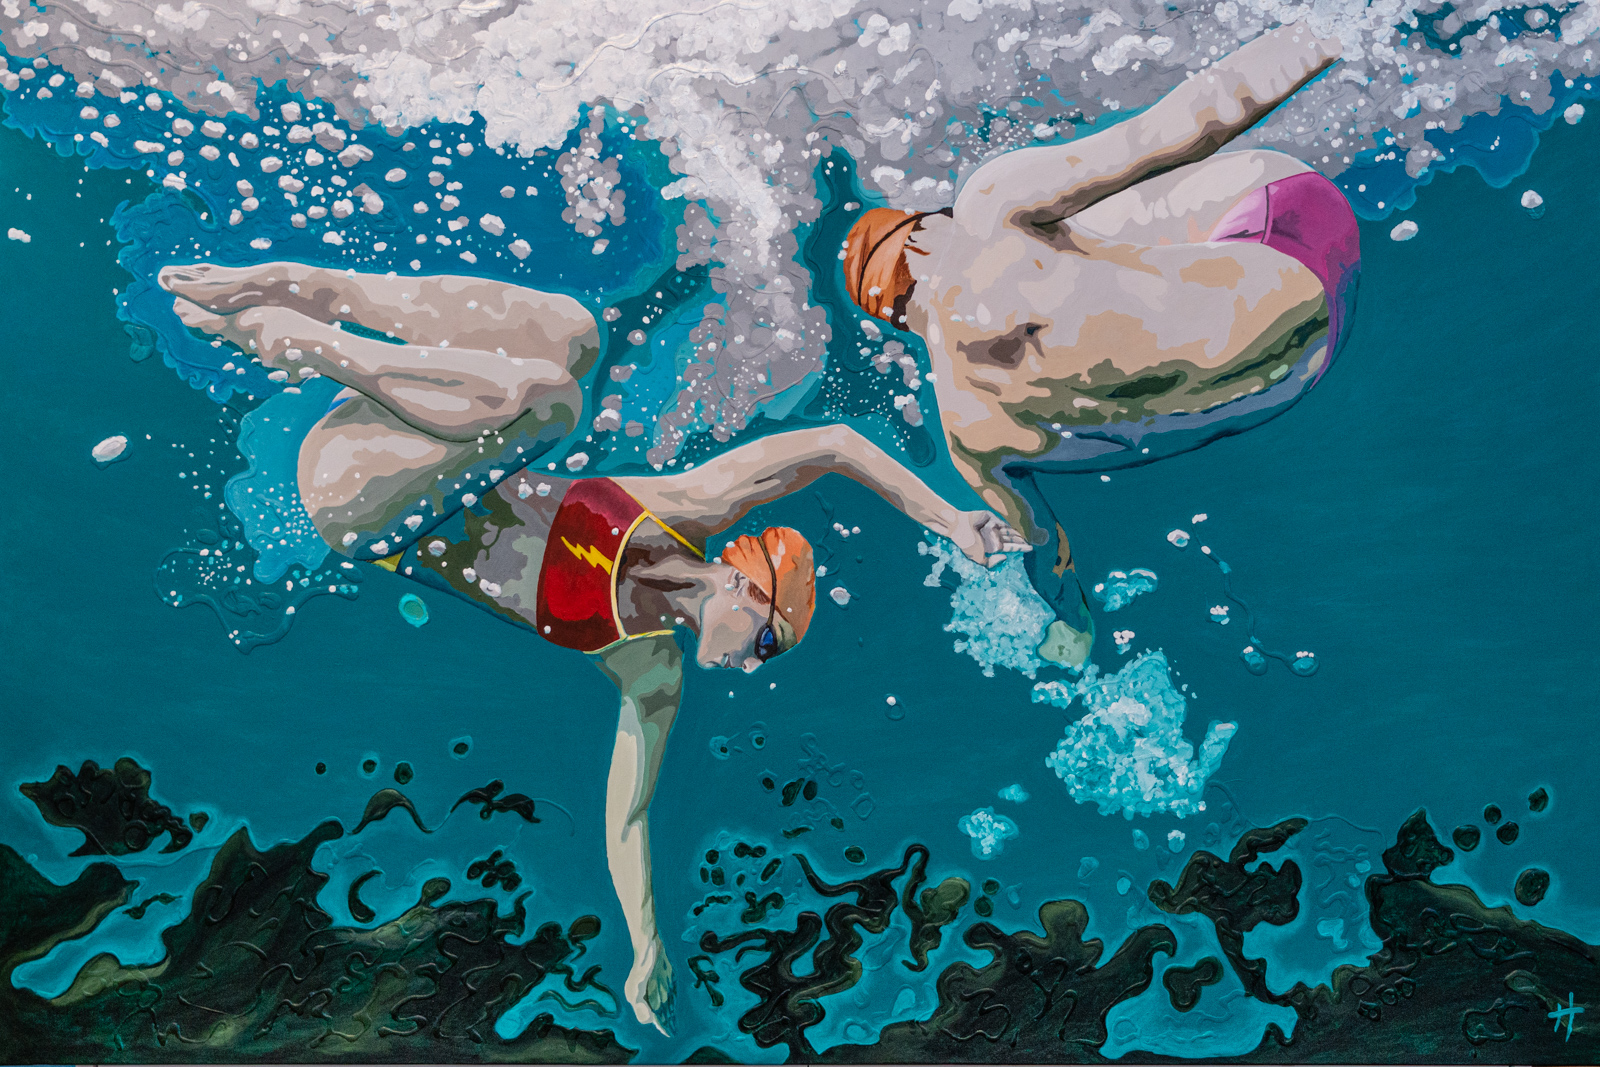 Heather Perry's underwater painting of her image of two swimmers underwater for subjects.